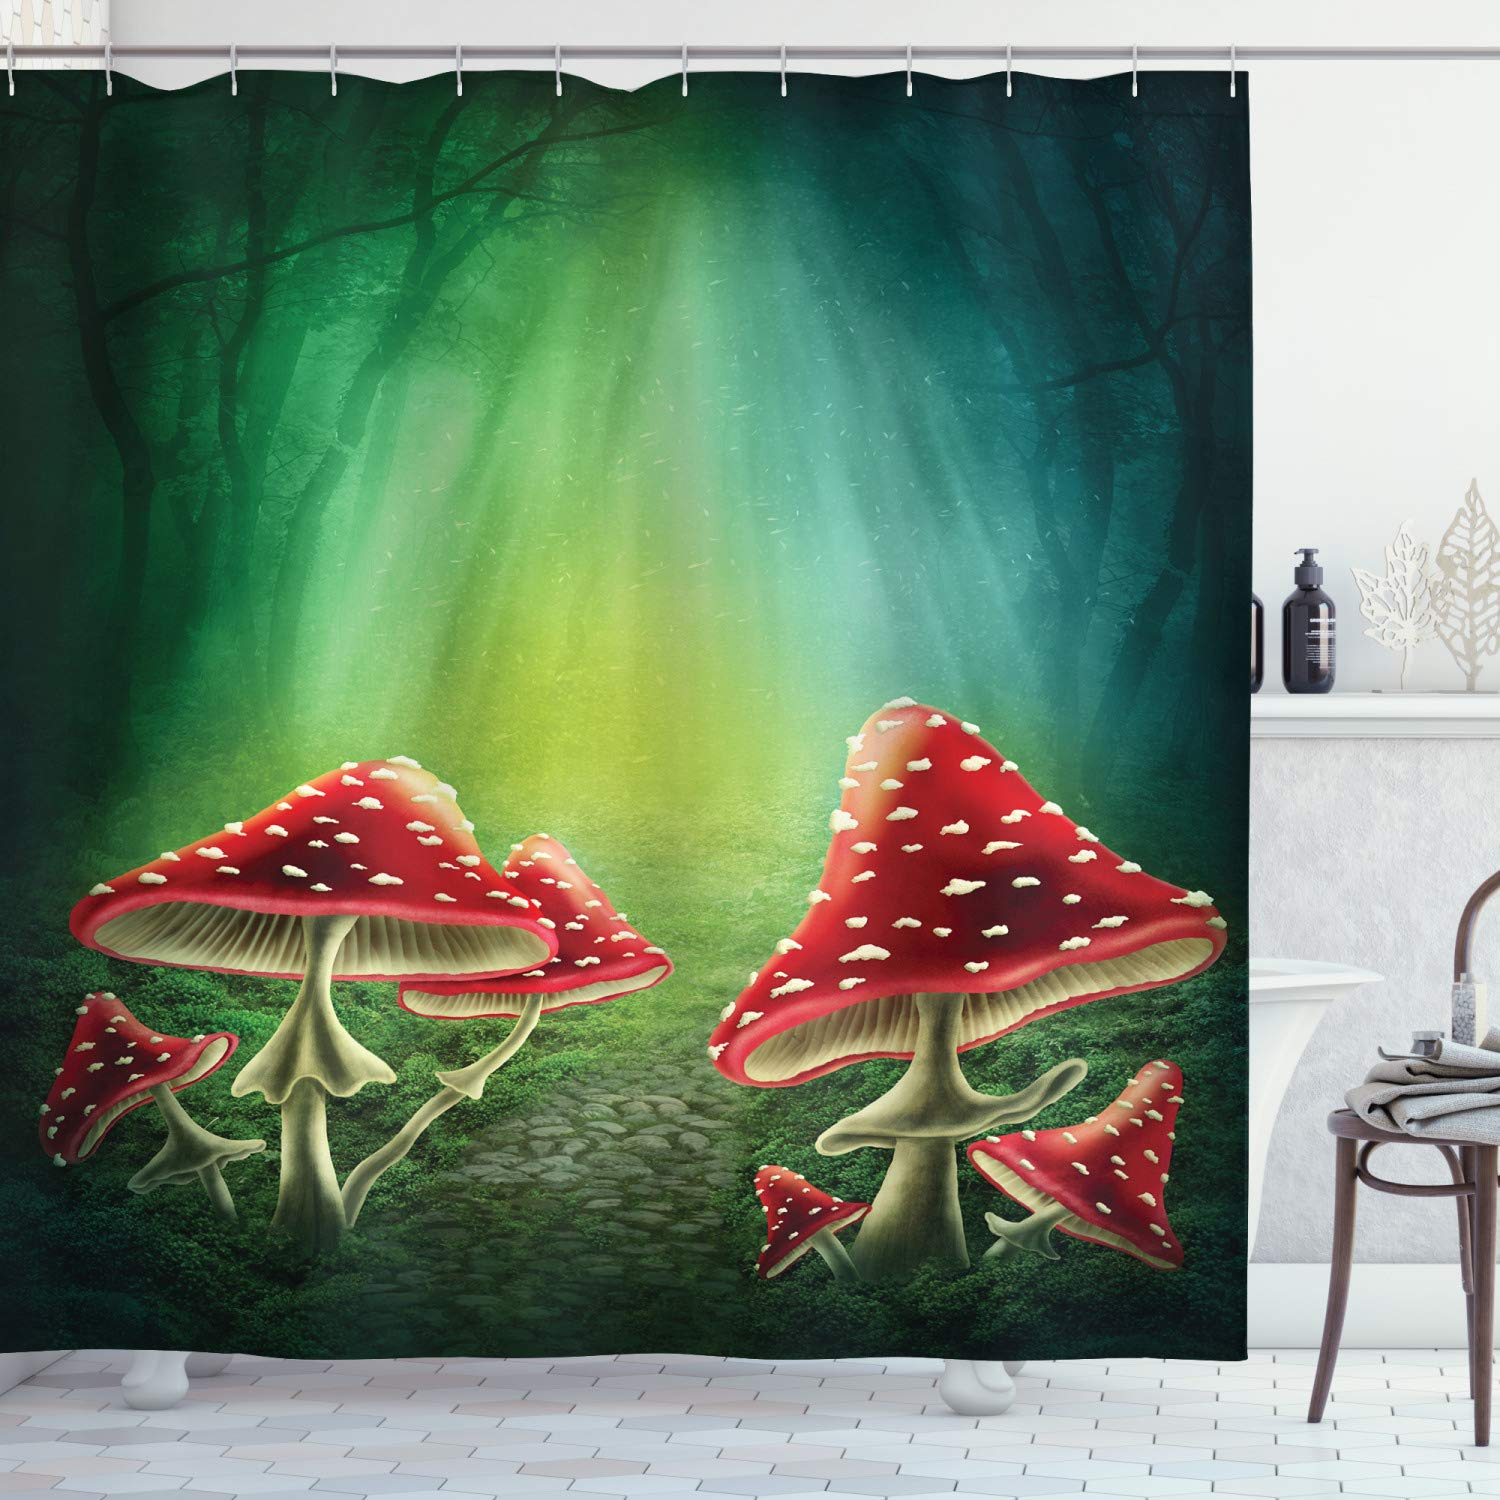 "Ambesonne Mushroom Shower Curtain, Dark Forest with Mushrooms Adventure Misty Mysterious Wizard Witch Magic, Cloth Fabric Bathroom Decor Set with Hooks, 75"" Long, Green Red"